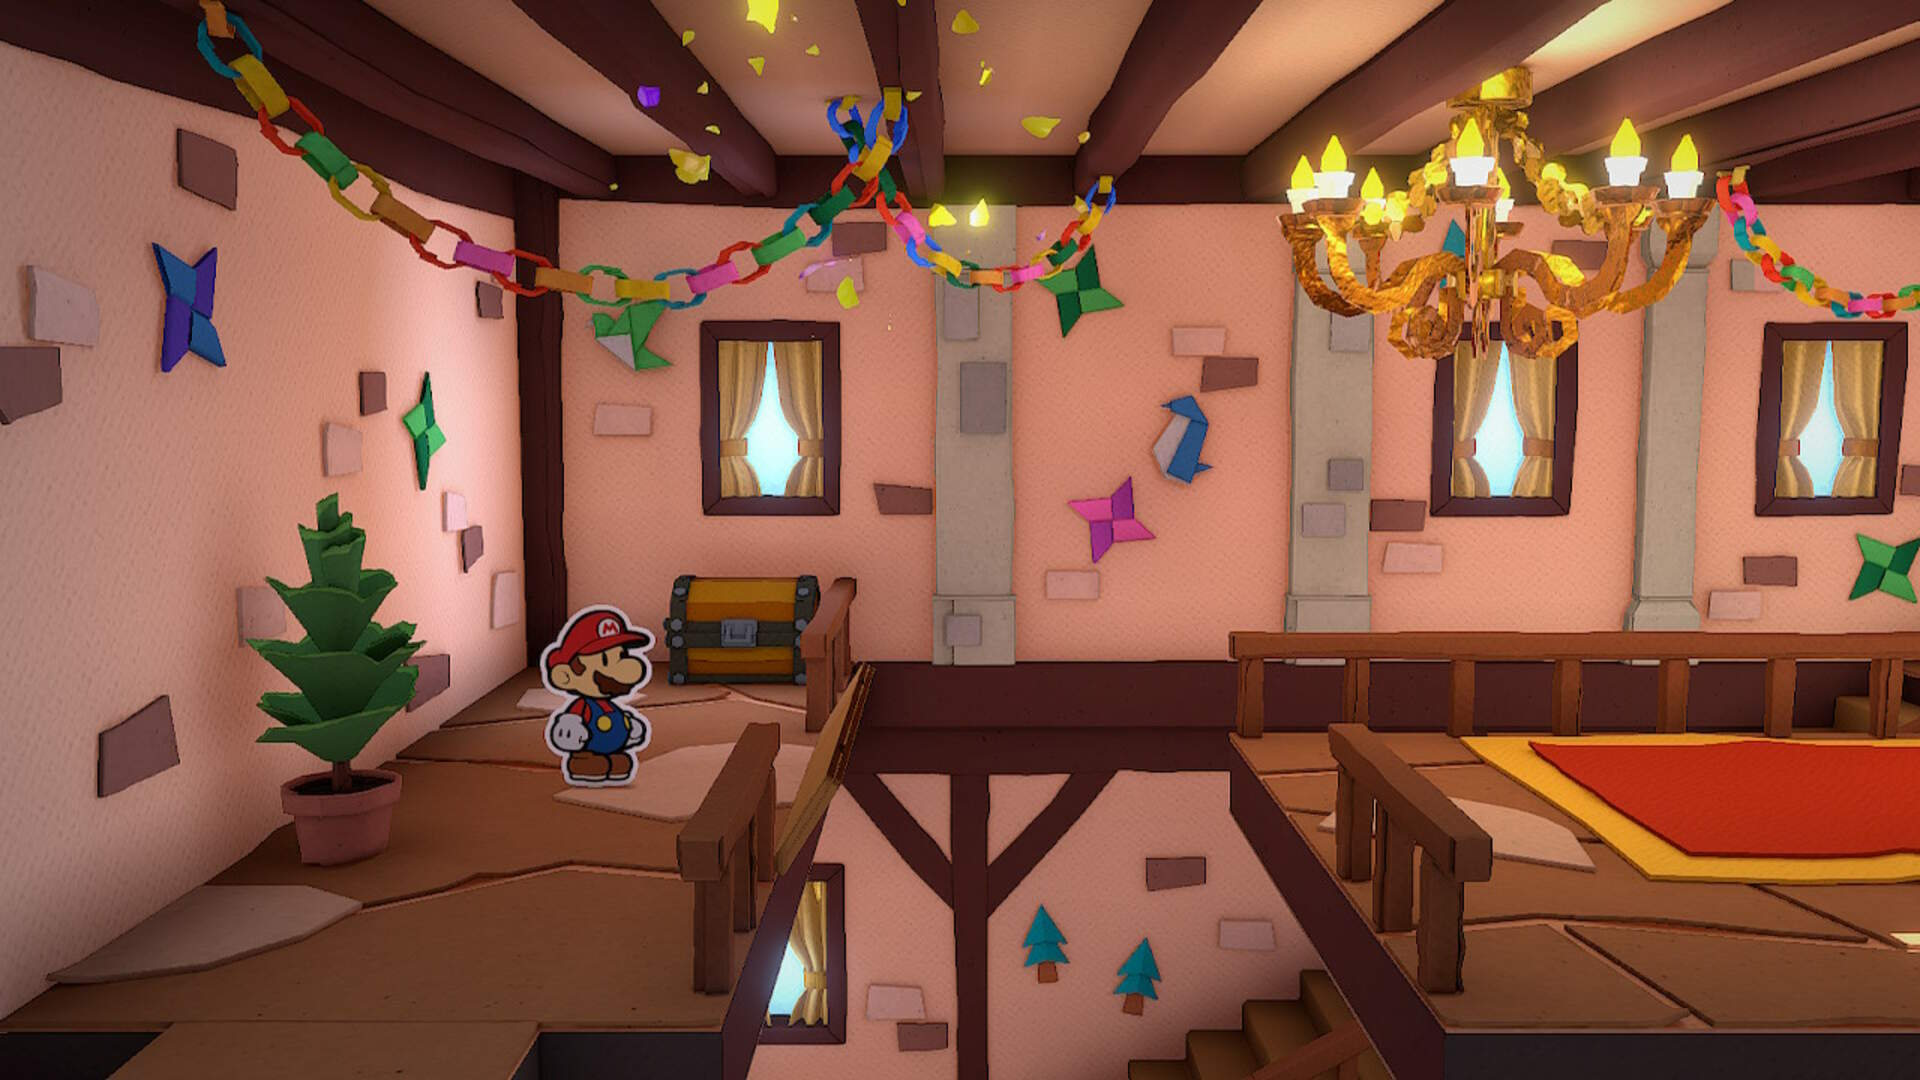 Paper Mario The Origami King: How to Get On the Roof of the Mansion in Toad Town